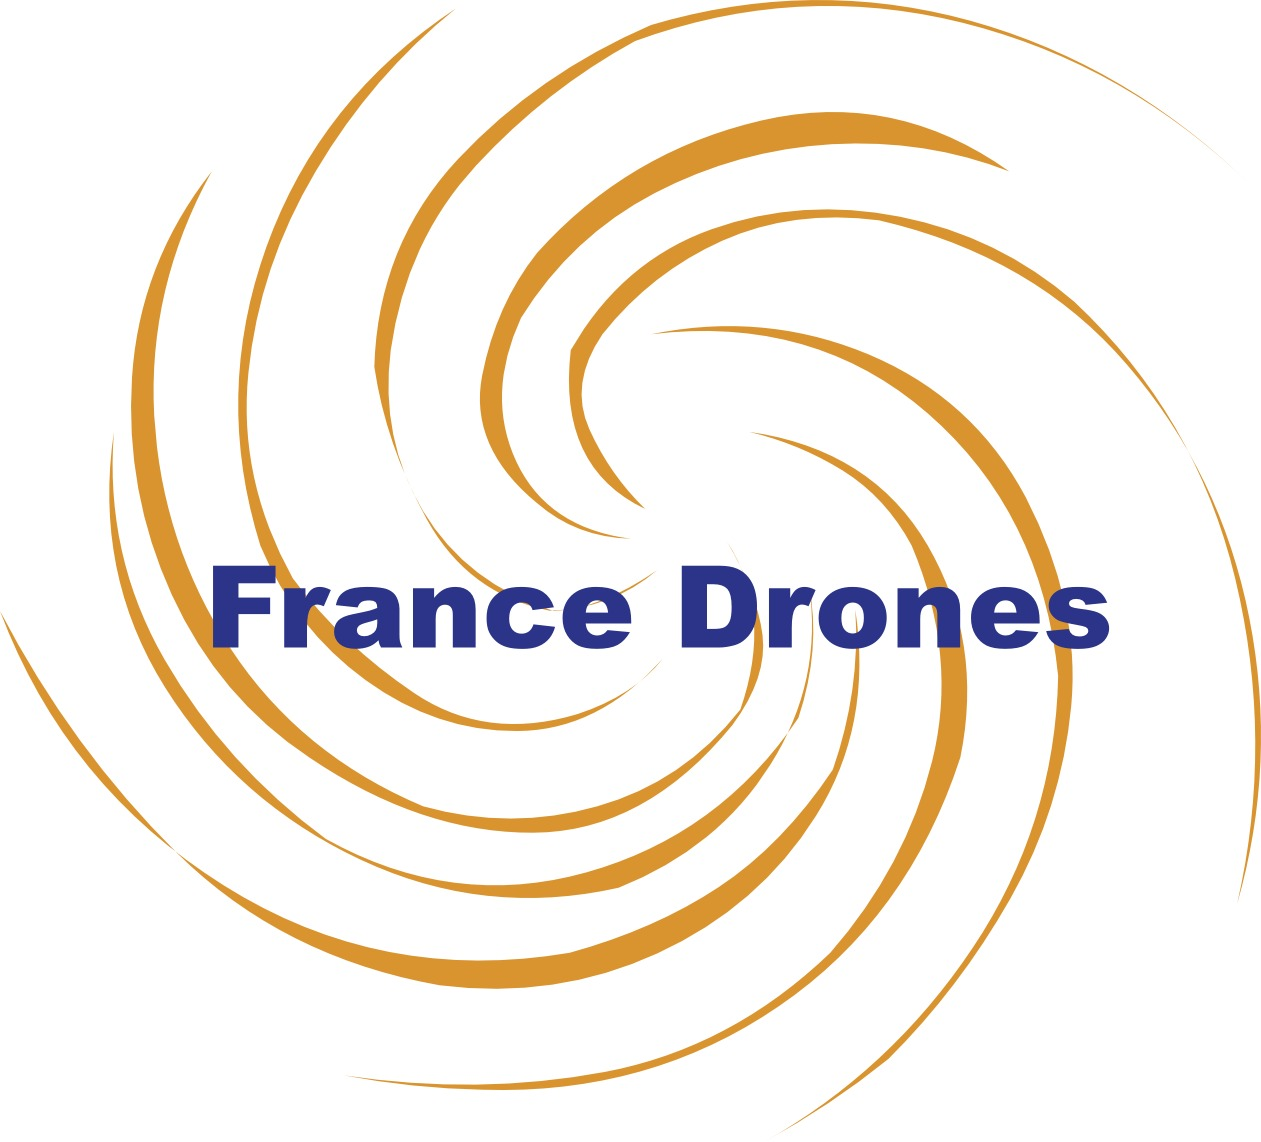 France drones